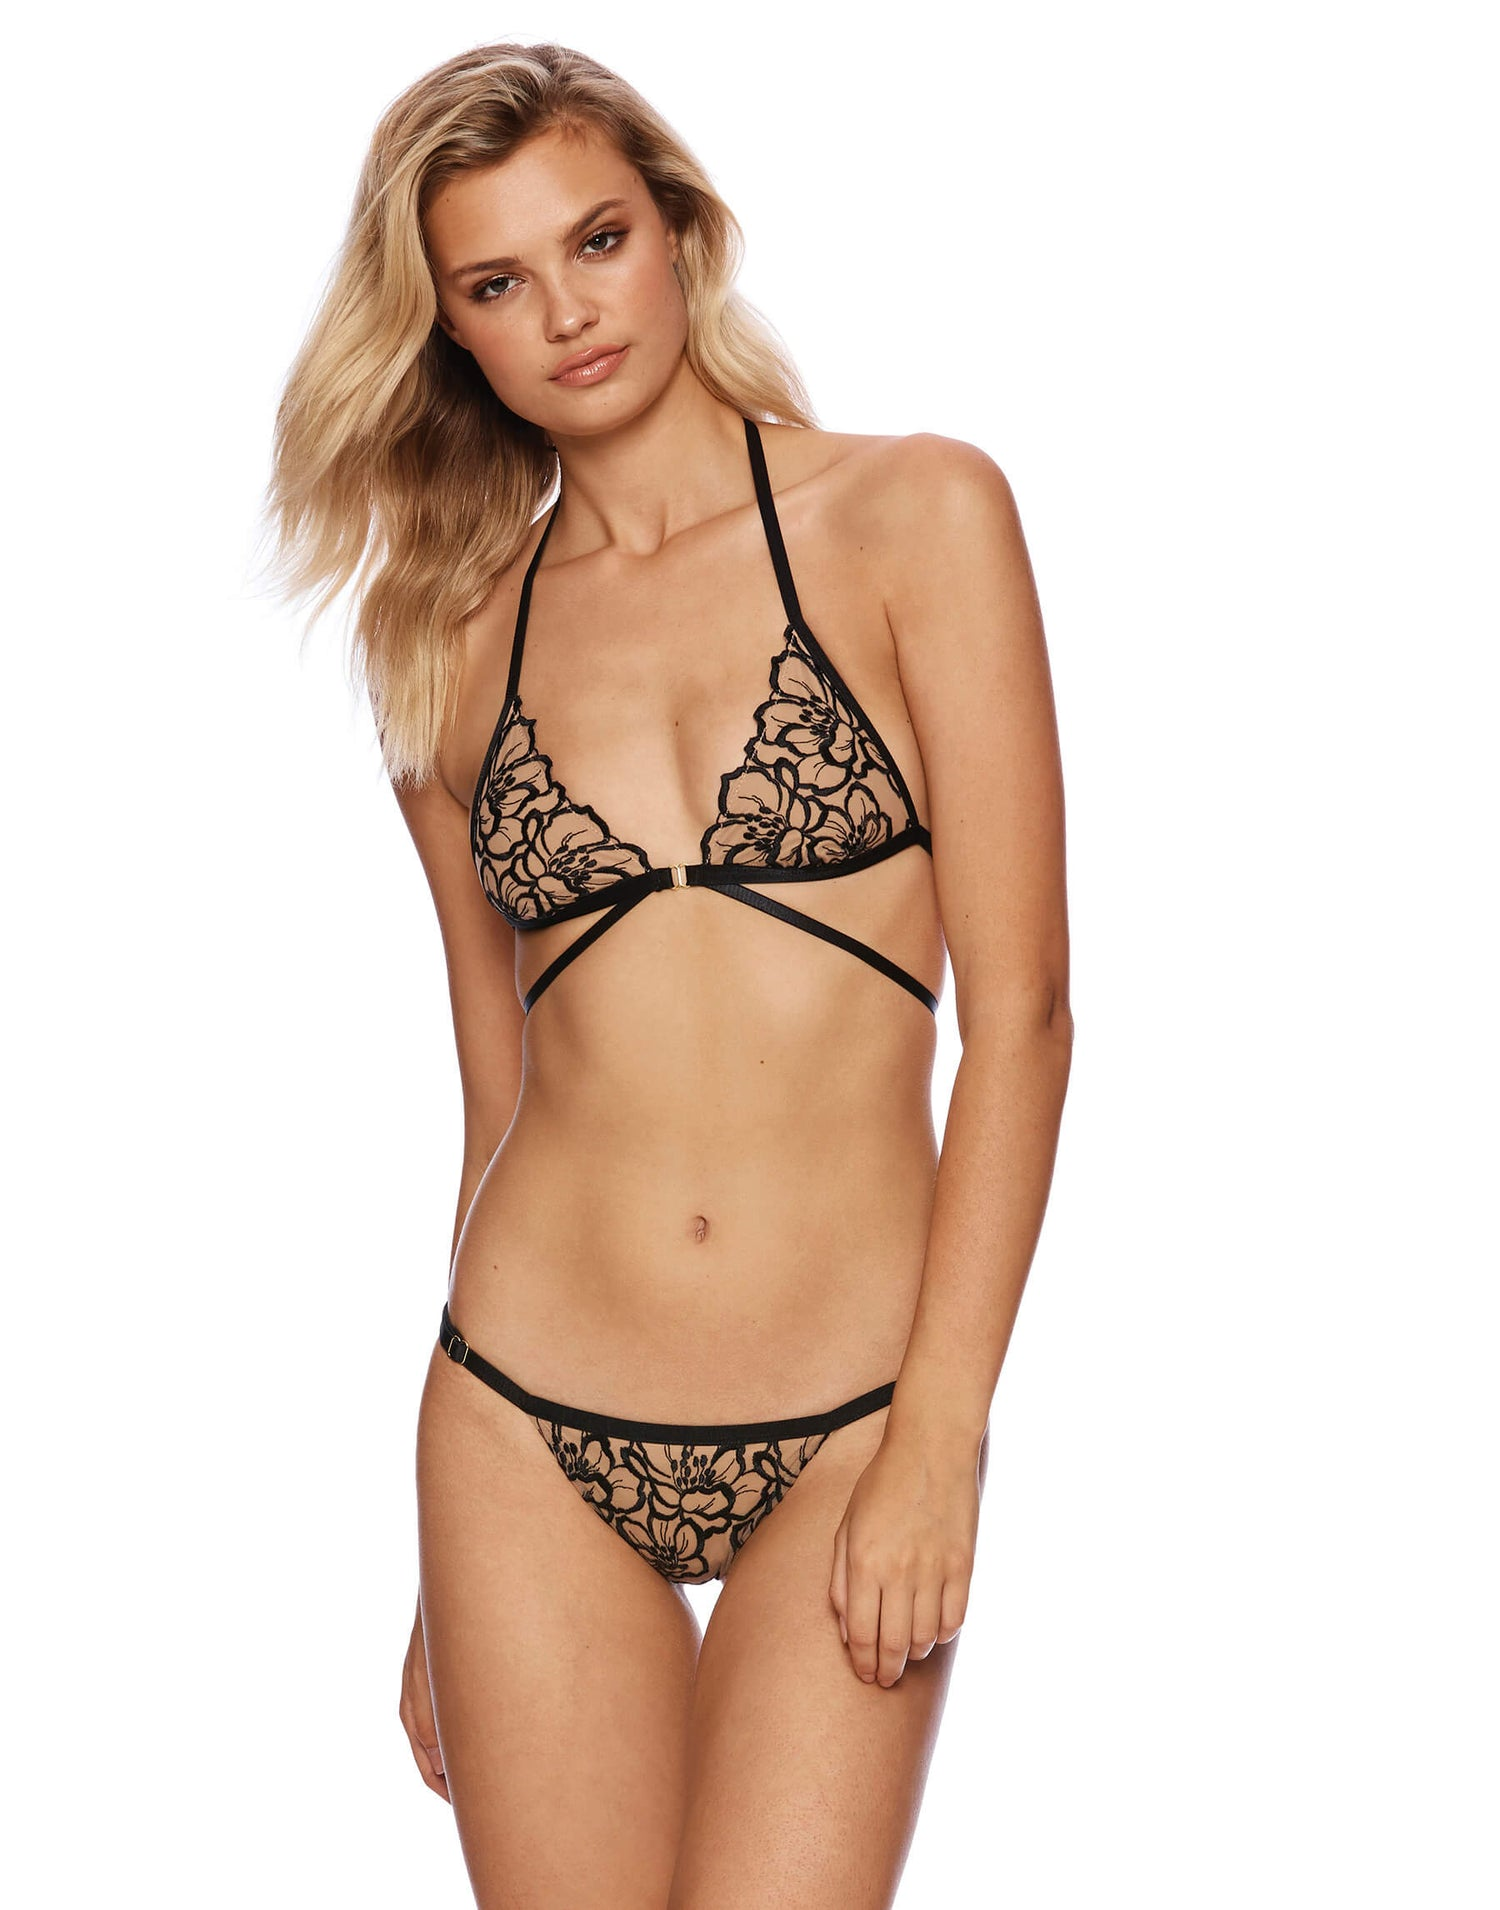 Embroidered Black Lace Bikini Wrap Top - product view